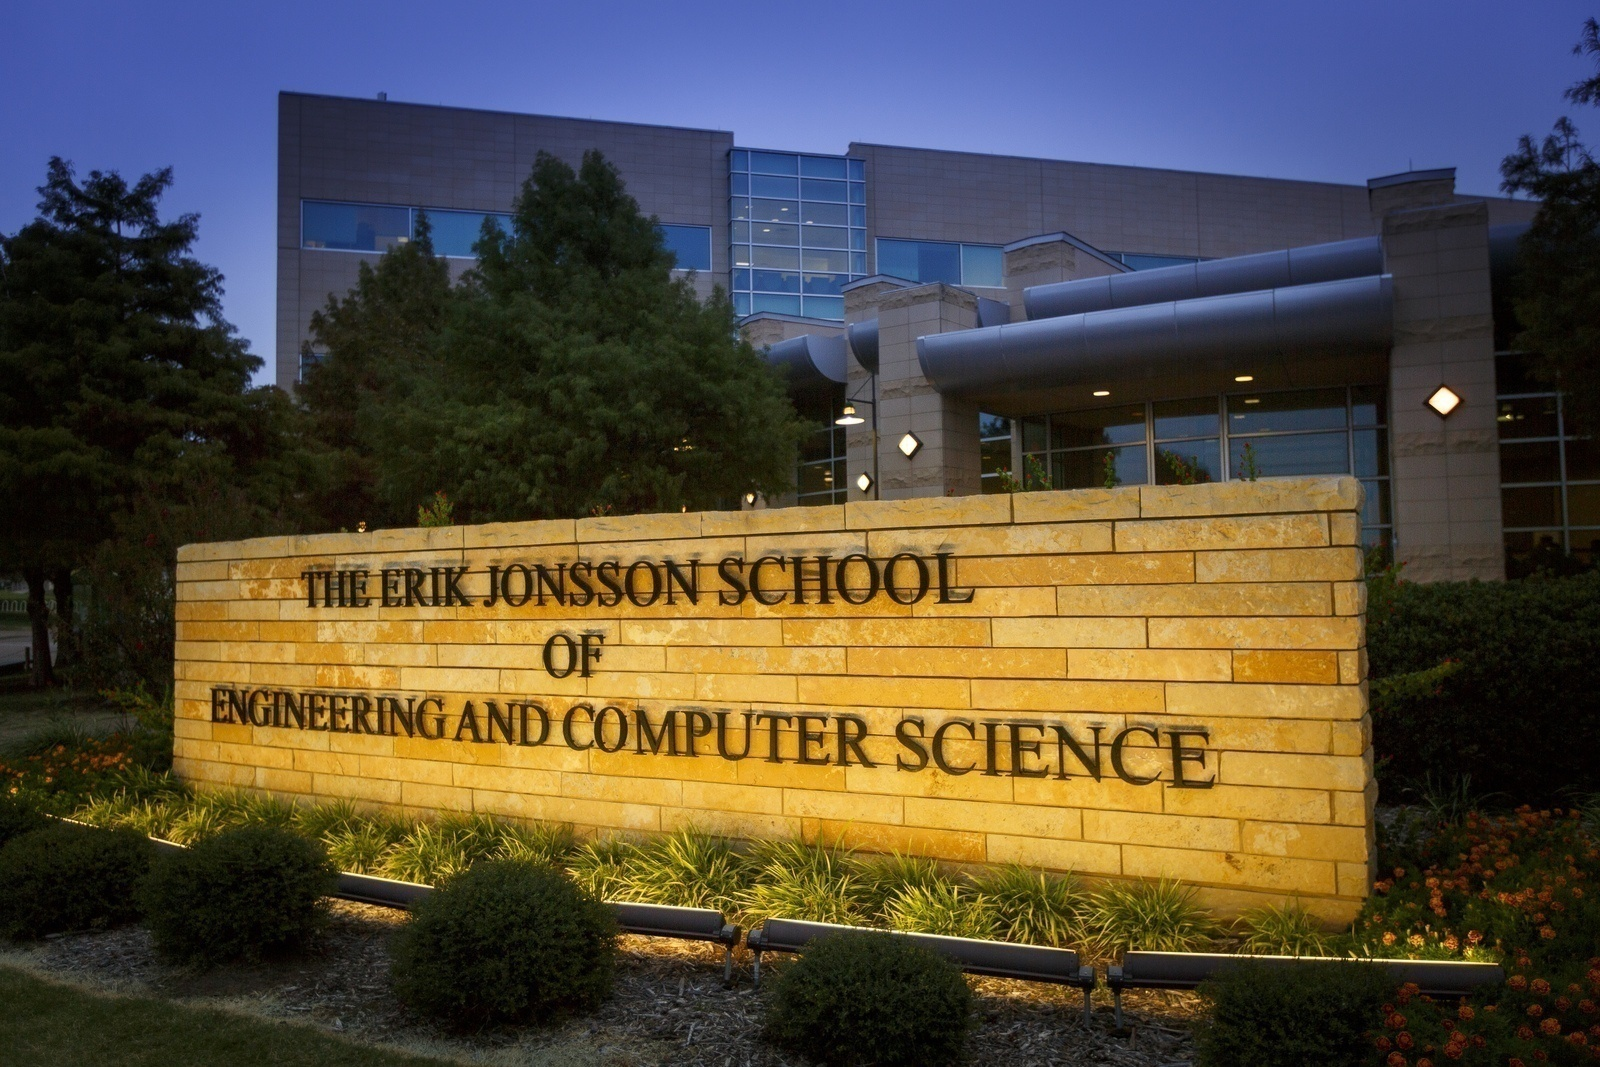 Sign outside of the Erik Jonsson School of Engineering and Computer Science building